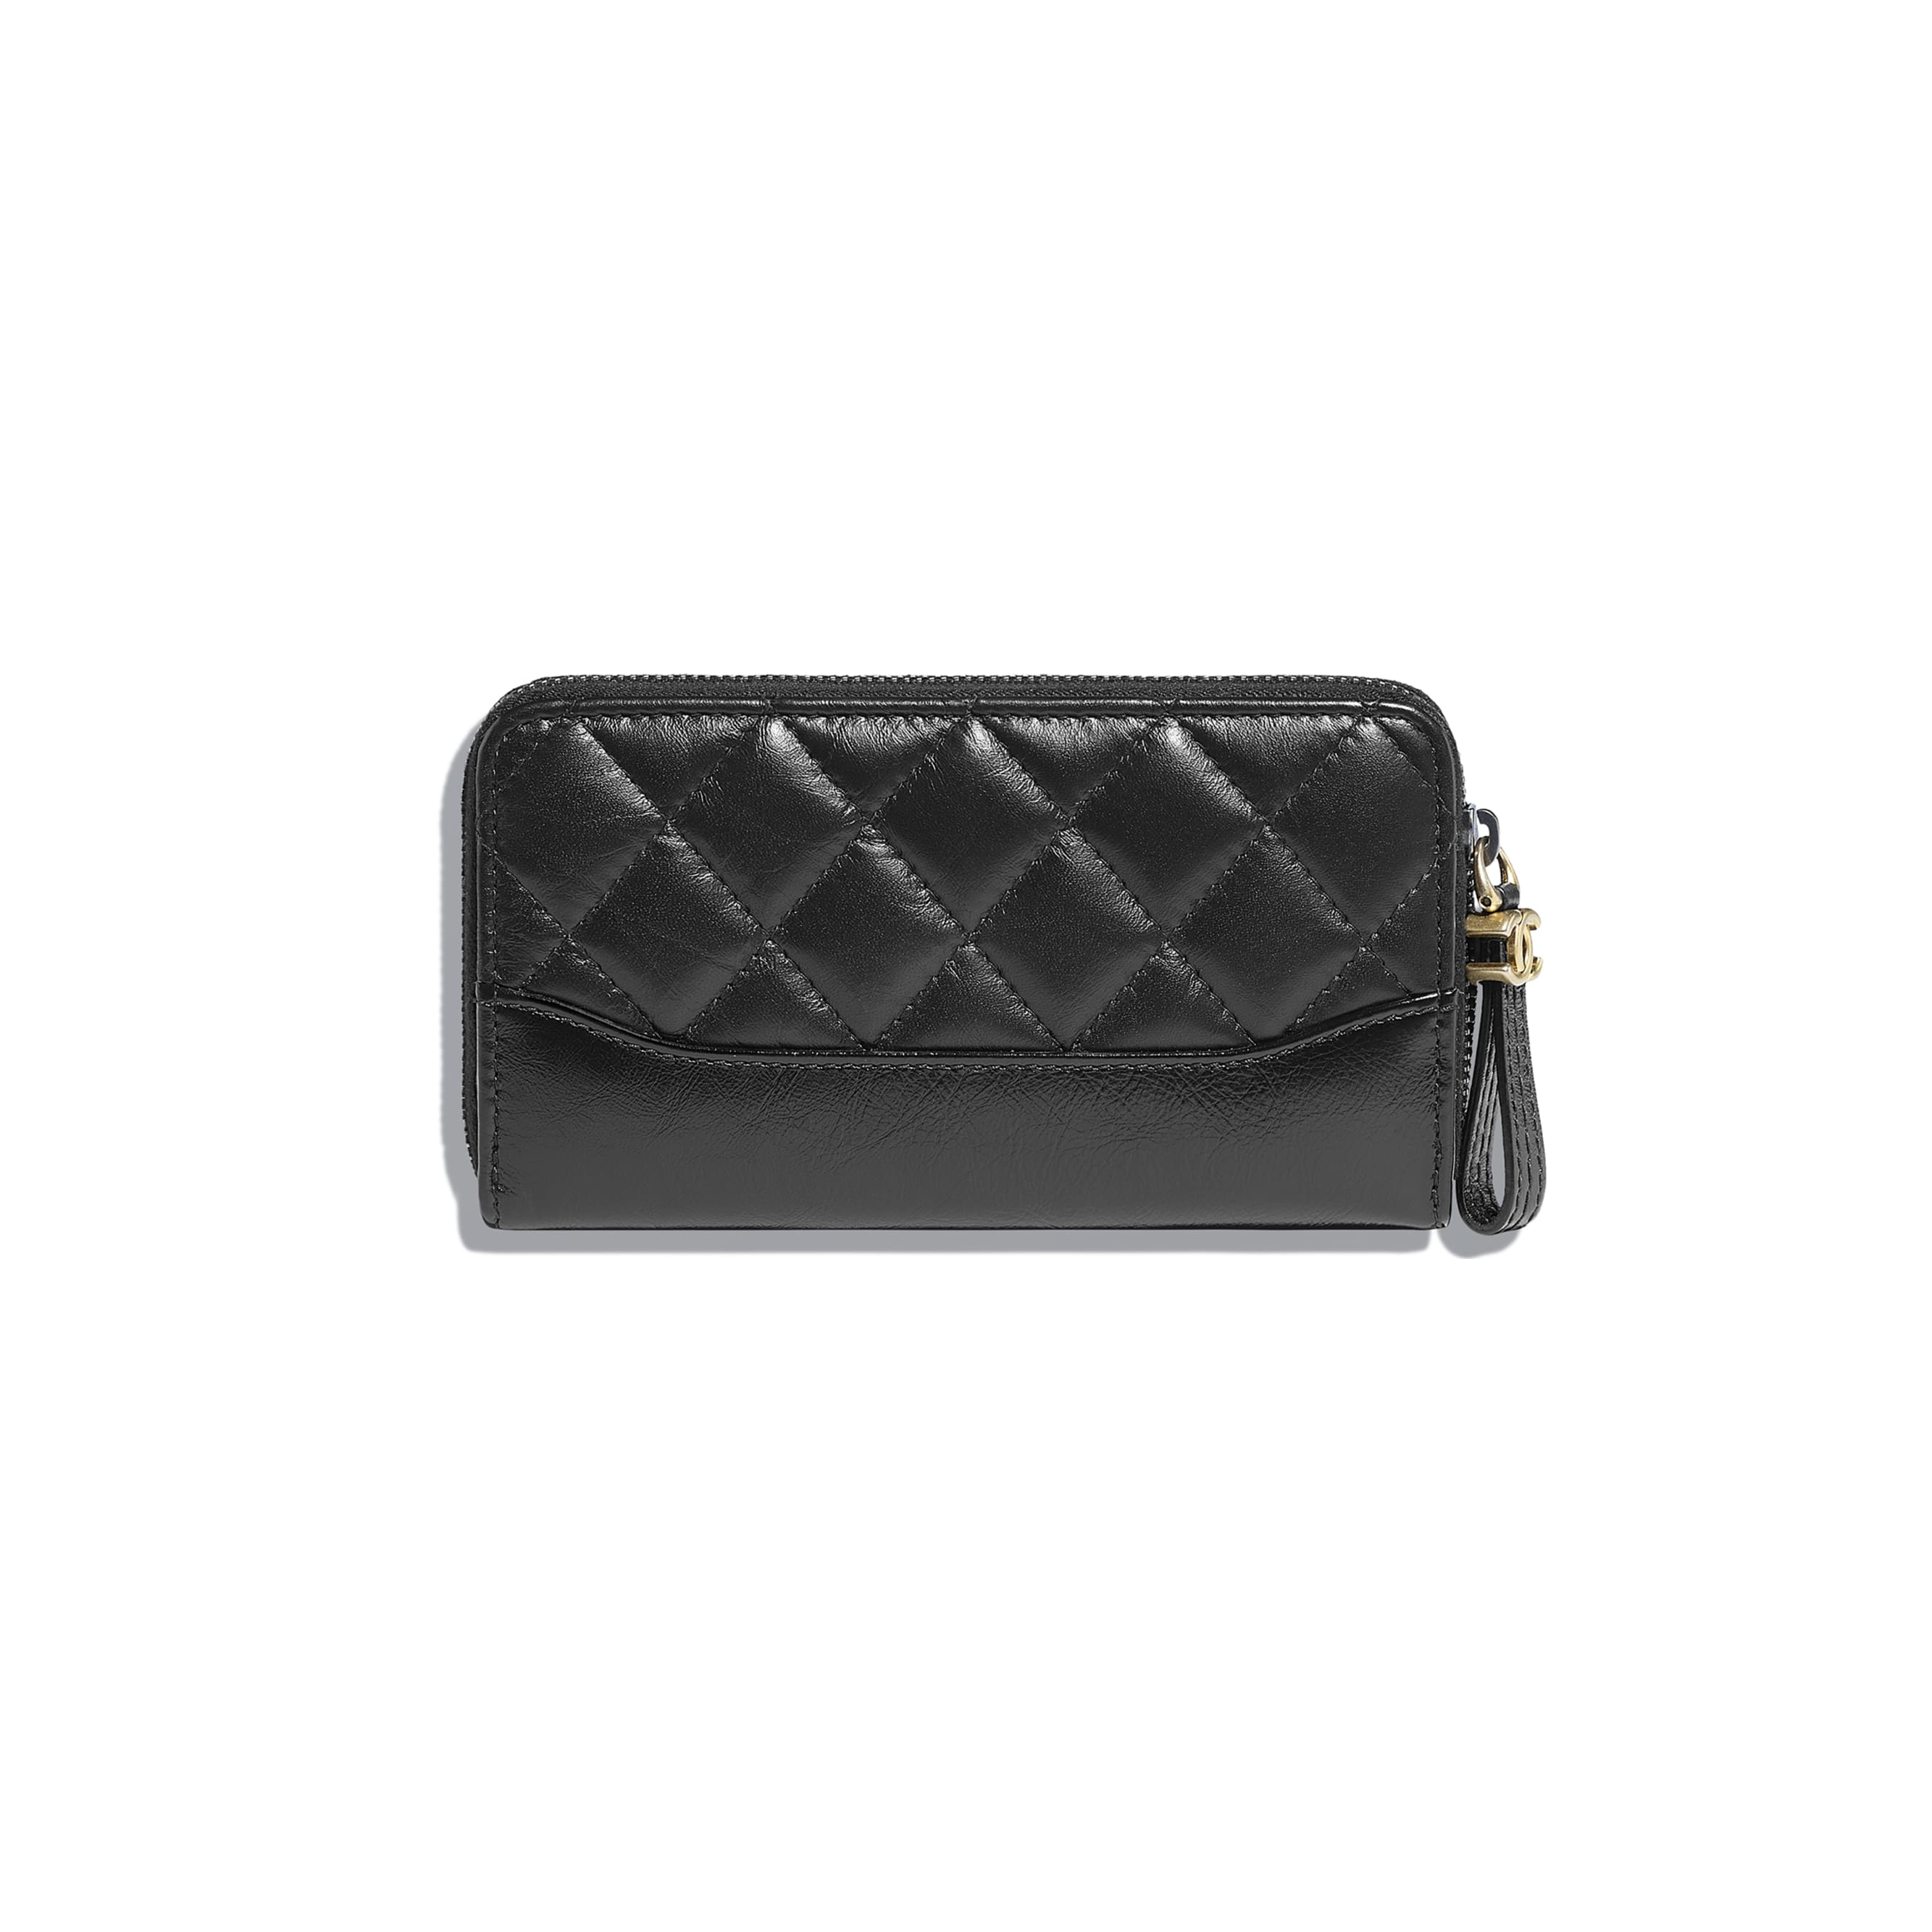 Zip Wallet - Black - Aged Calfskin, Smooth Calfskin, Gold-Tone, Silver-Tone & Ruthenium-Finish Metal - CHANEL - Alternative view - see standard sized version